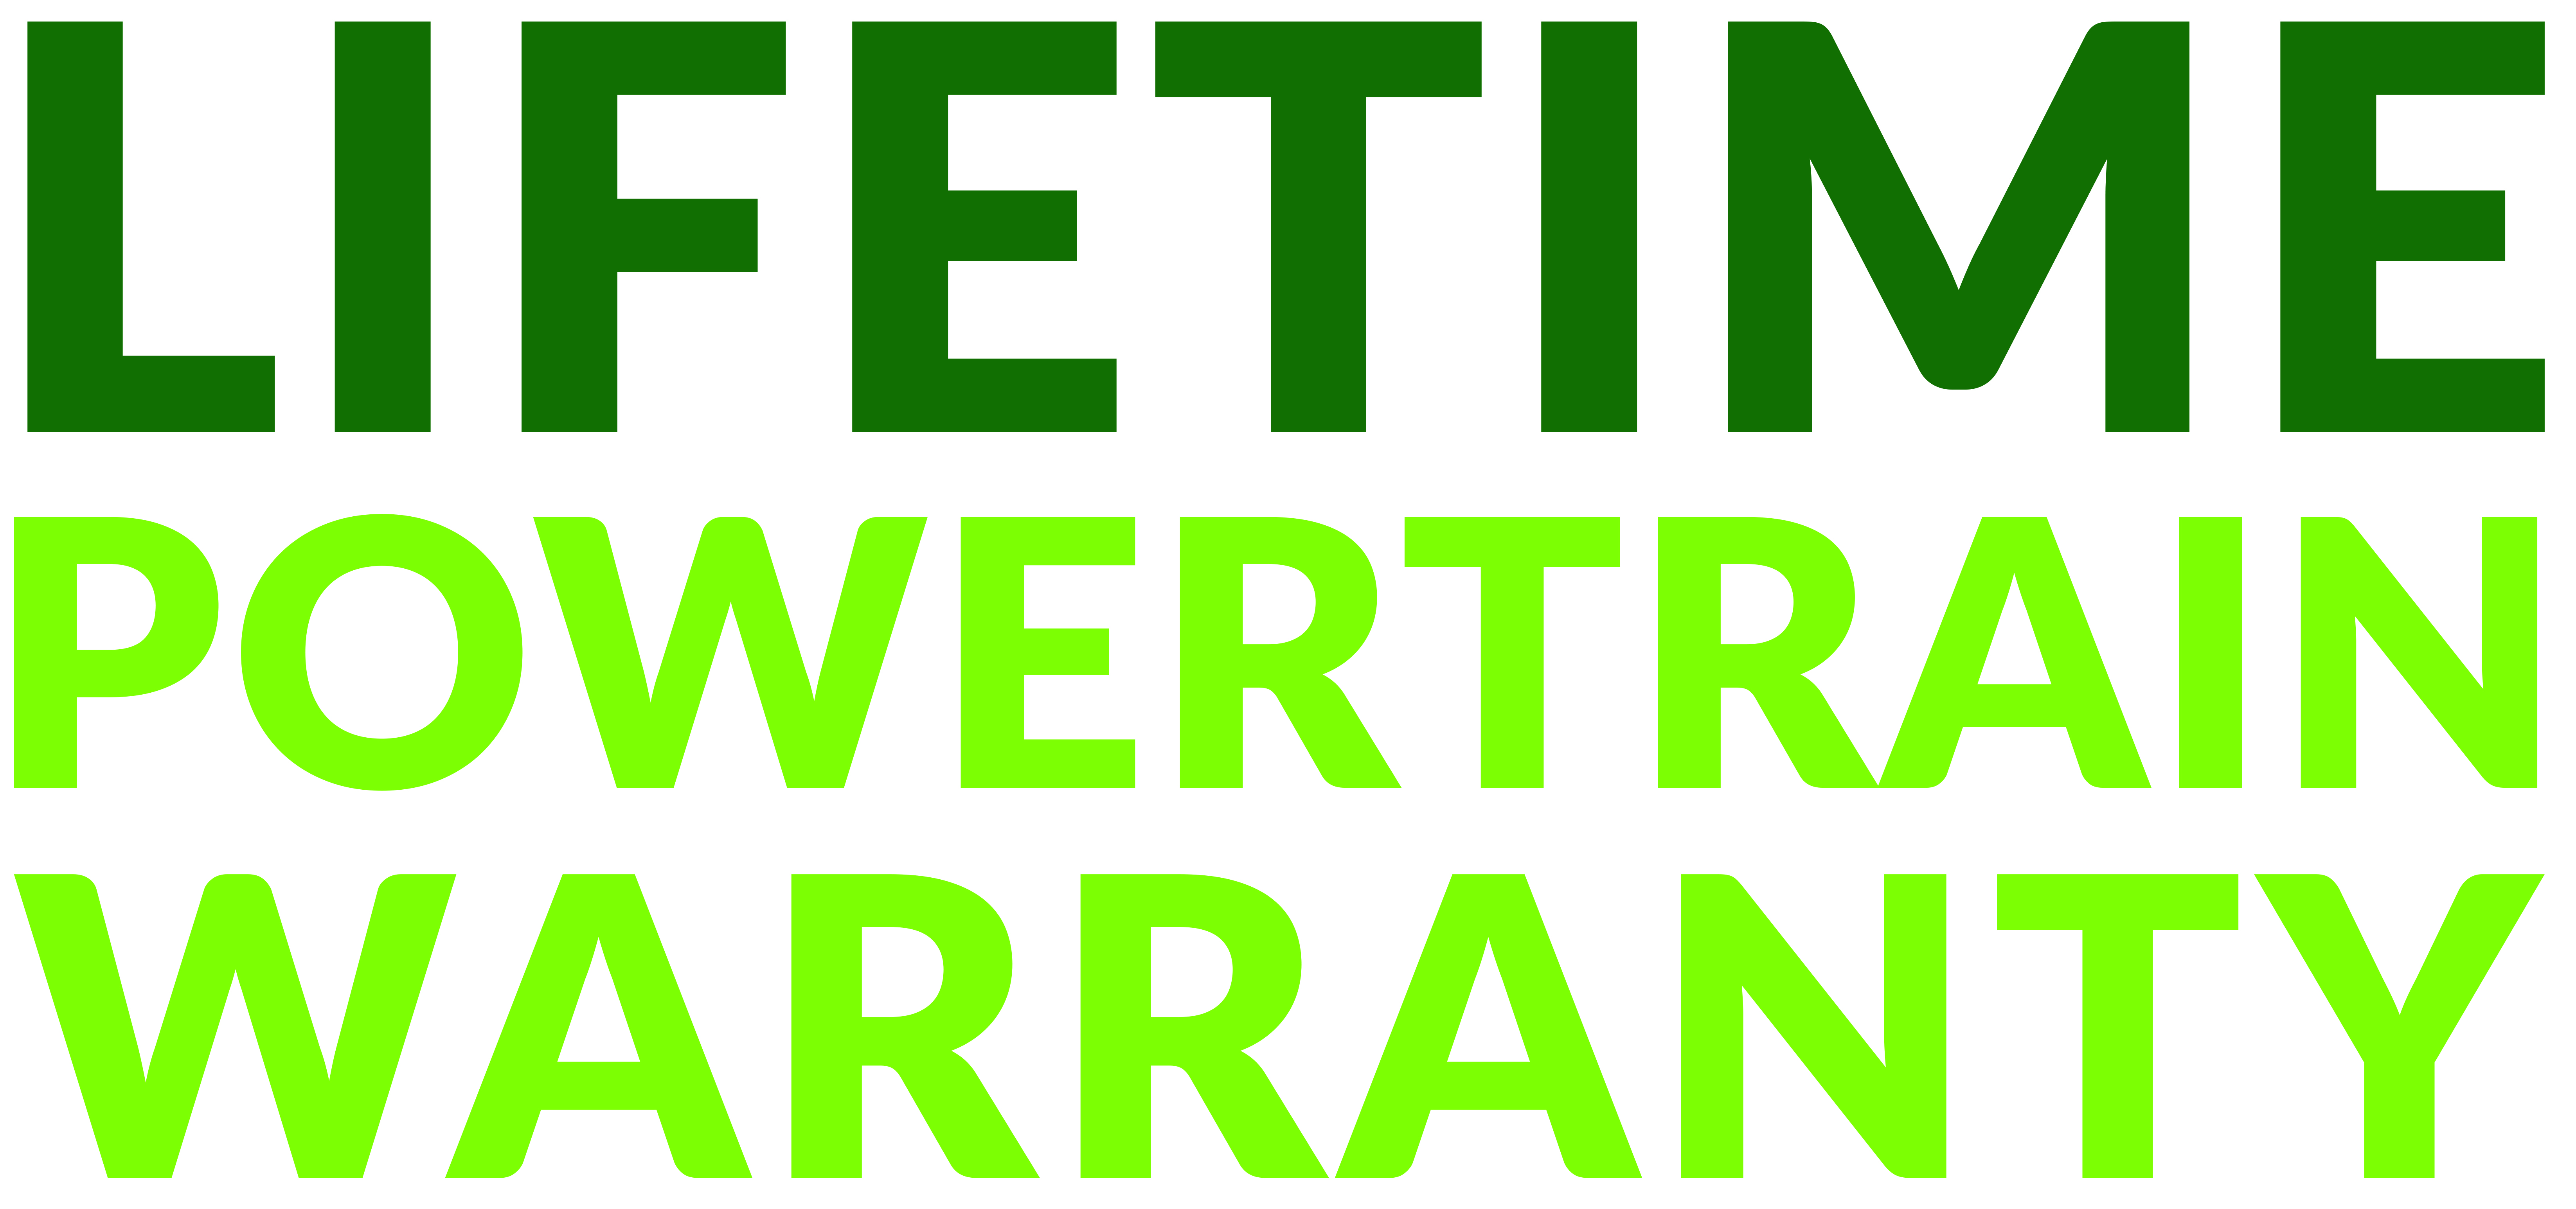 What Is Warranty Forever Watermark Toyota